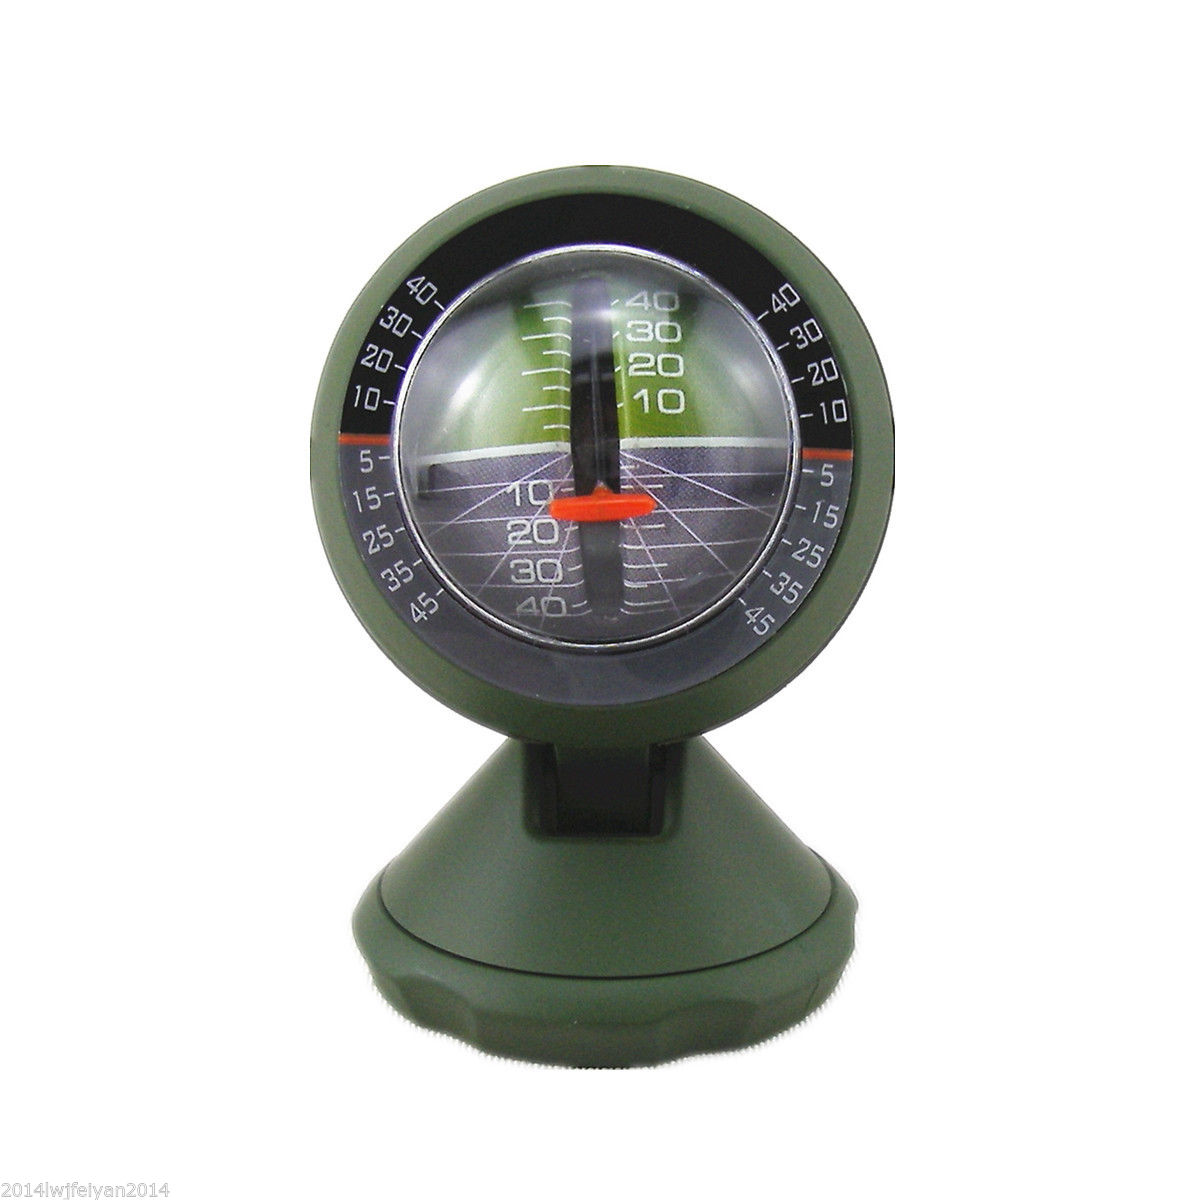 Car SUV Camp Inclinometer Slope Tilt Indicator Level Meter Slope Meter Gauge Protractor Vehicle Gradient Balancer